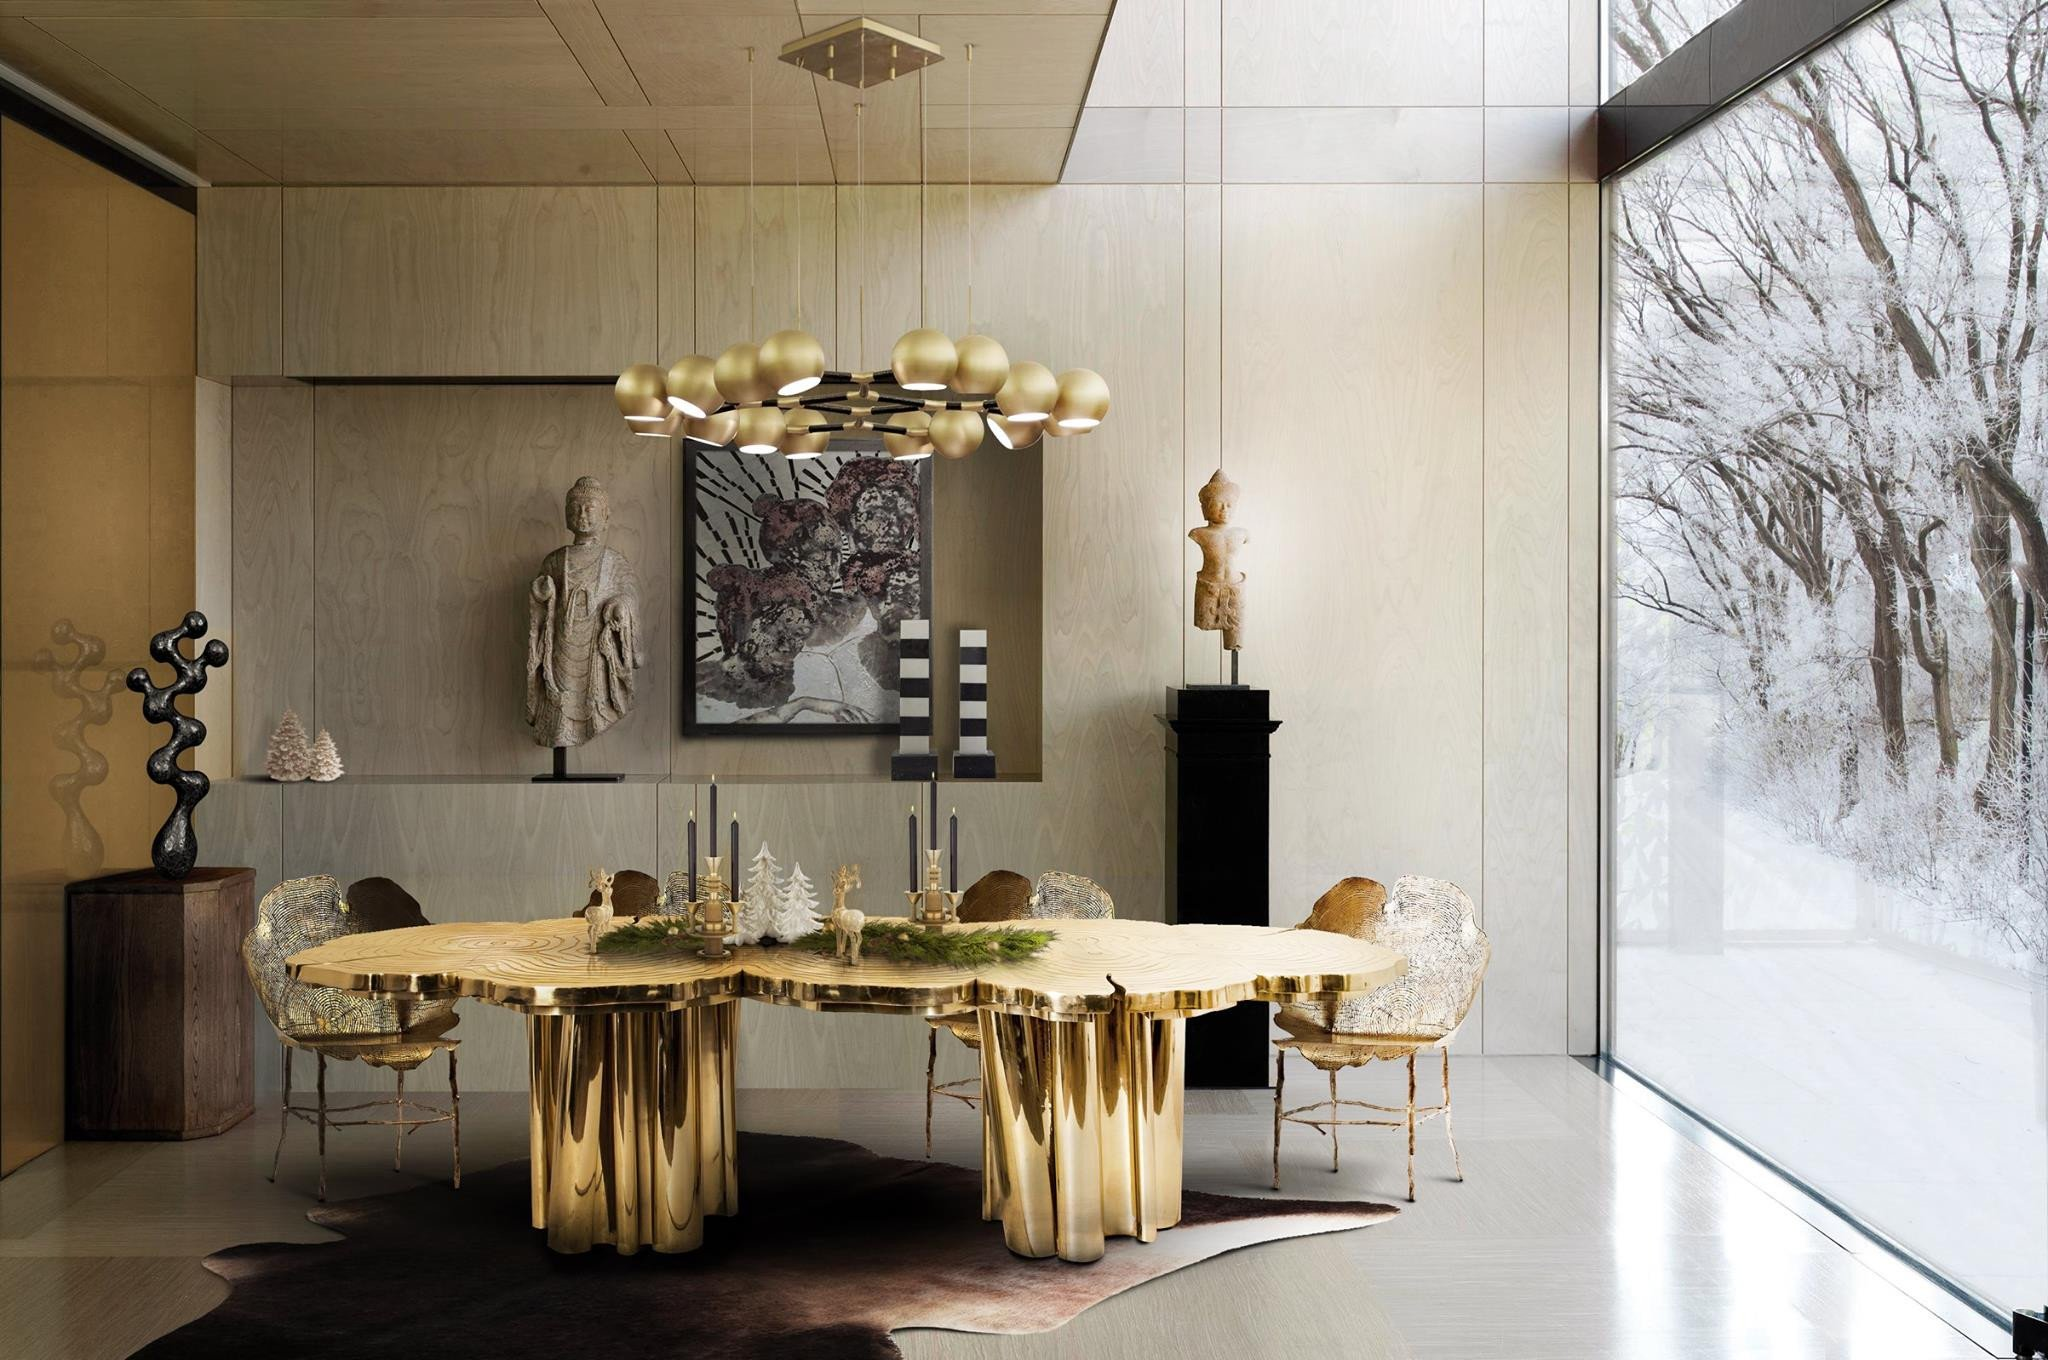 Modern Living Dining Room Decorating Ideas the Best Black and Gold Decorating Ideas for Your Dining Room